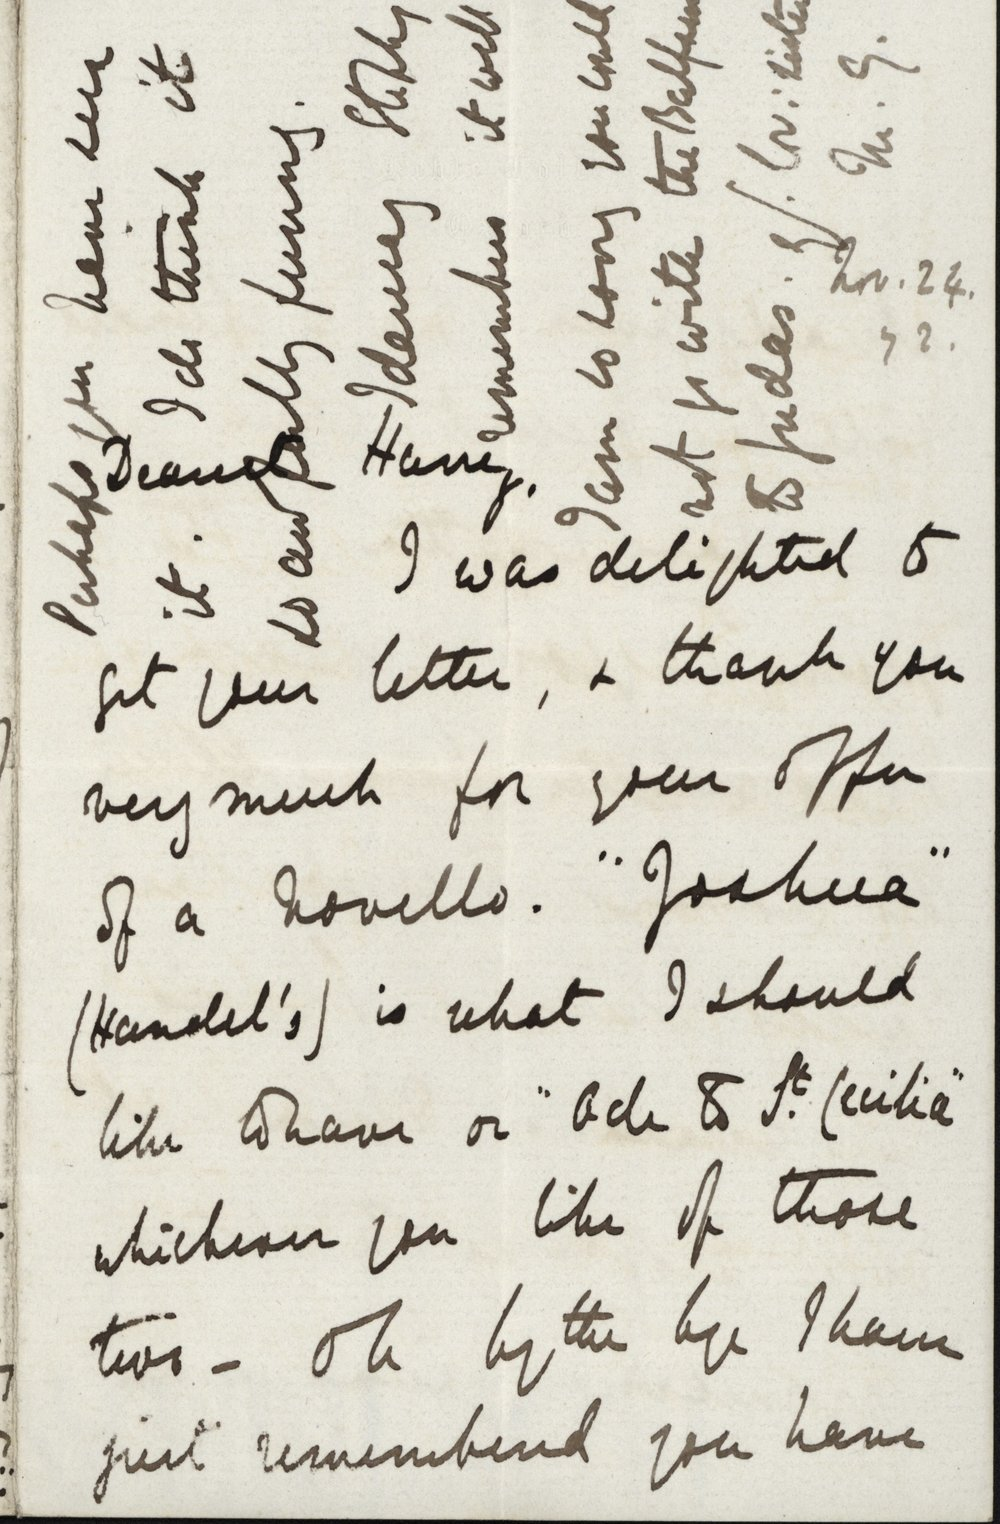 Mary Gladstone to Henry Neville Gladstone, 24 November 1872. The Flintshire Record Office, GG 848. All images used with permission. See the end of the post for the transcription.